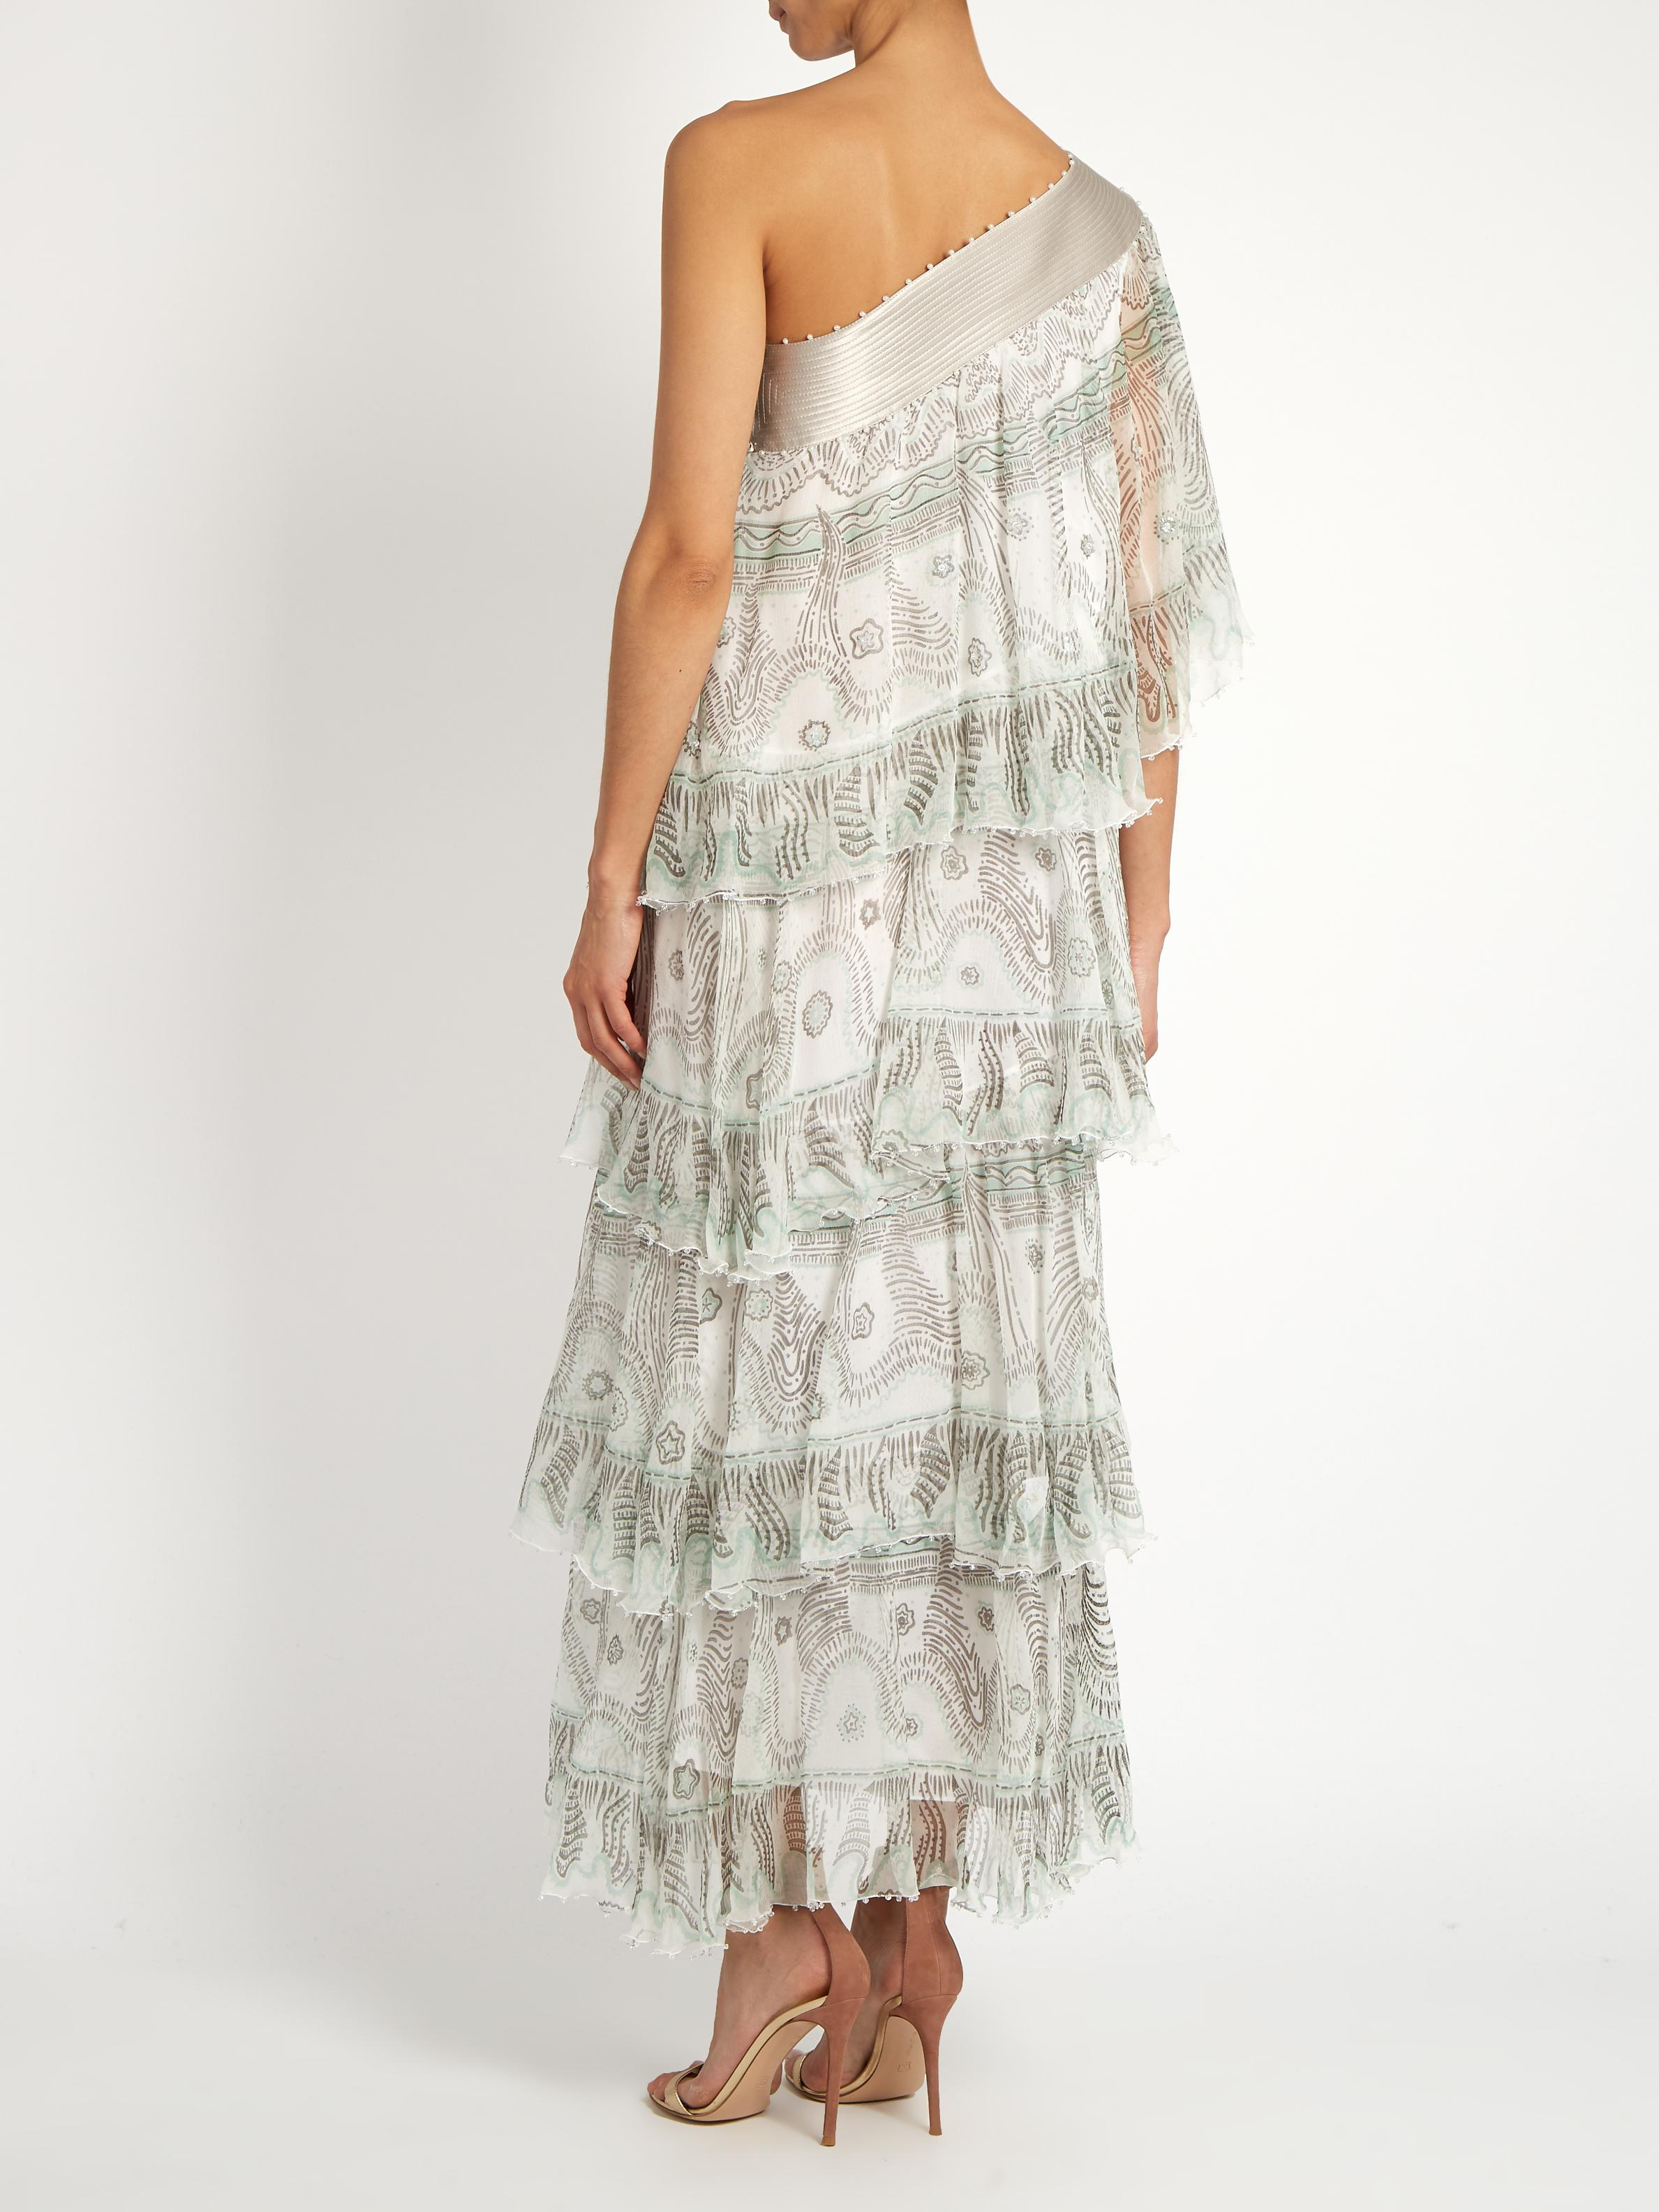 Zandra Rhodes Archive I The 1984 Frilly Circle Dress in White - Lyst